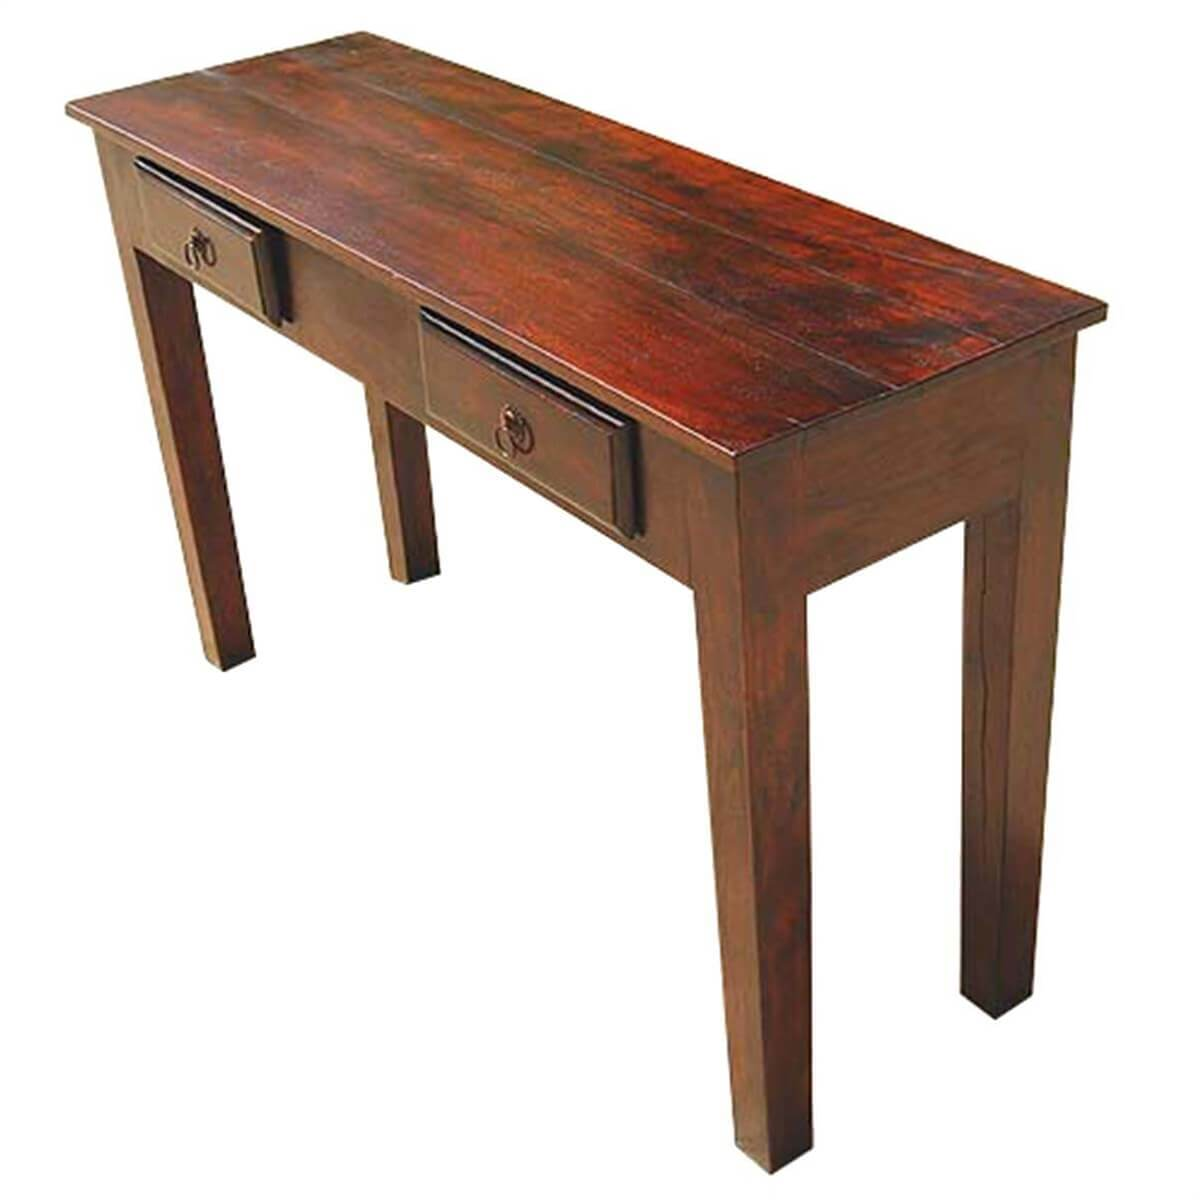 Wood Storage Drawers Console Hall Entry Way Foyer Table